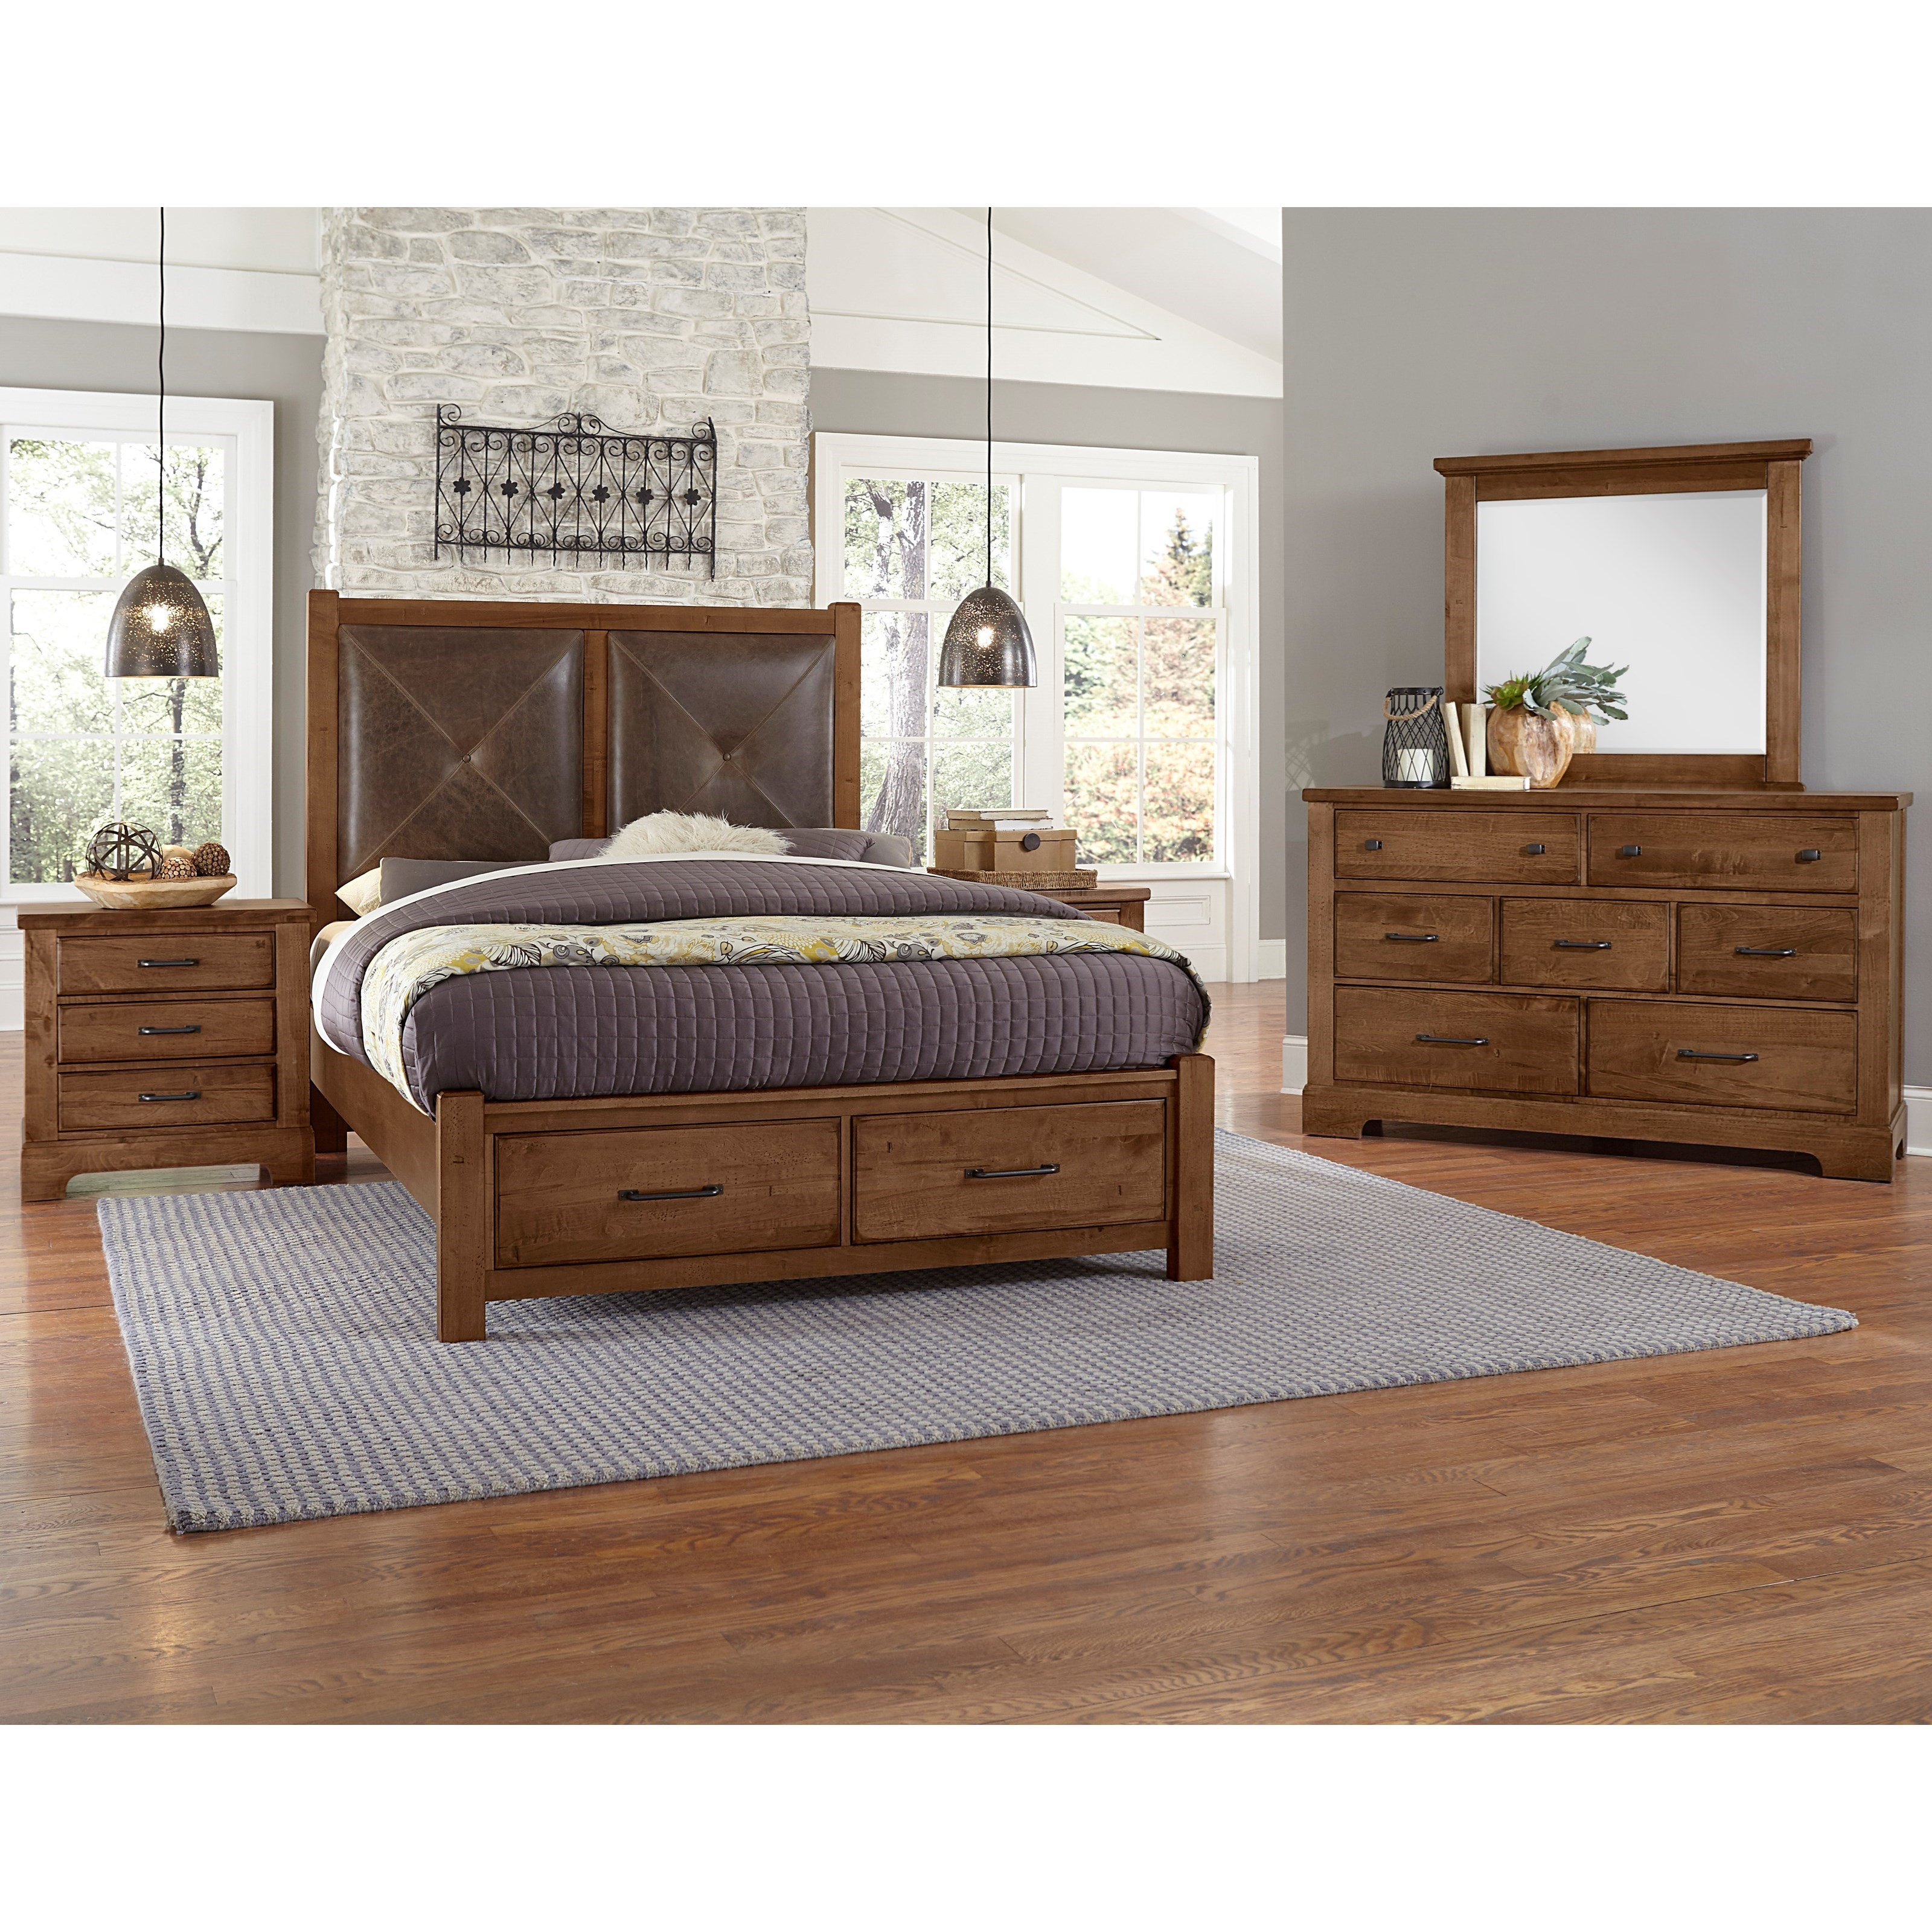 Cool Rustic Queen Bedroom Group by Artisan & Post at Northeast Factory Direct